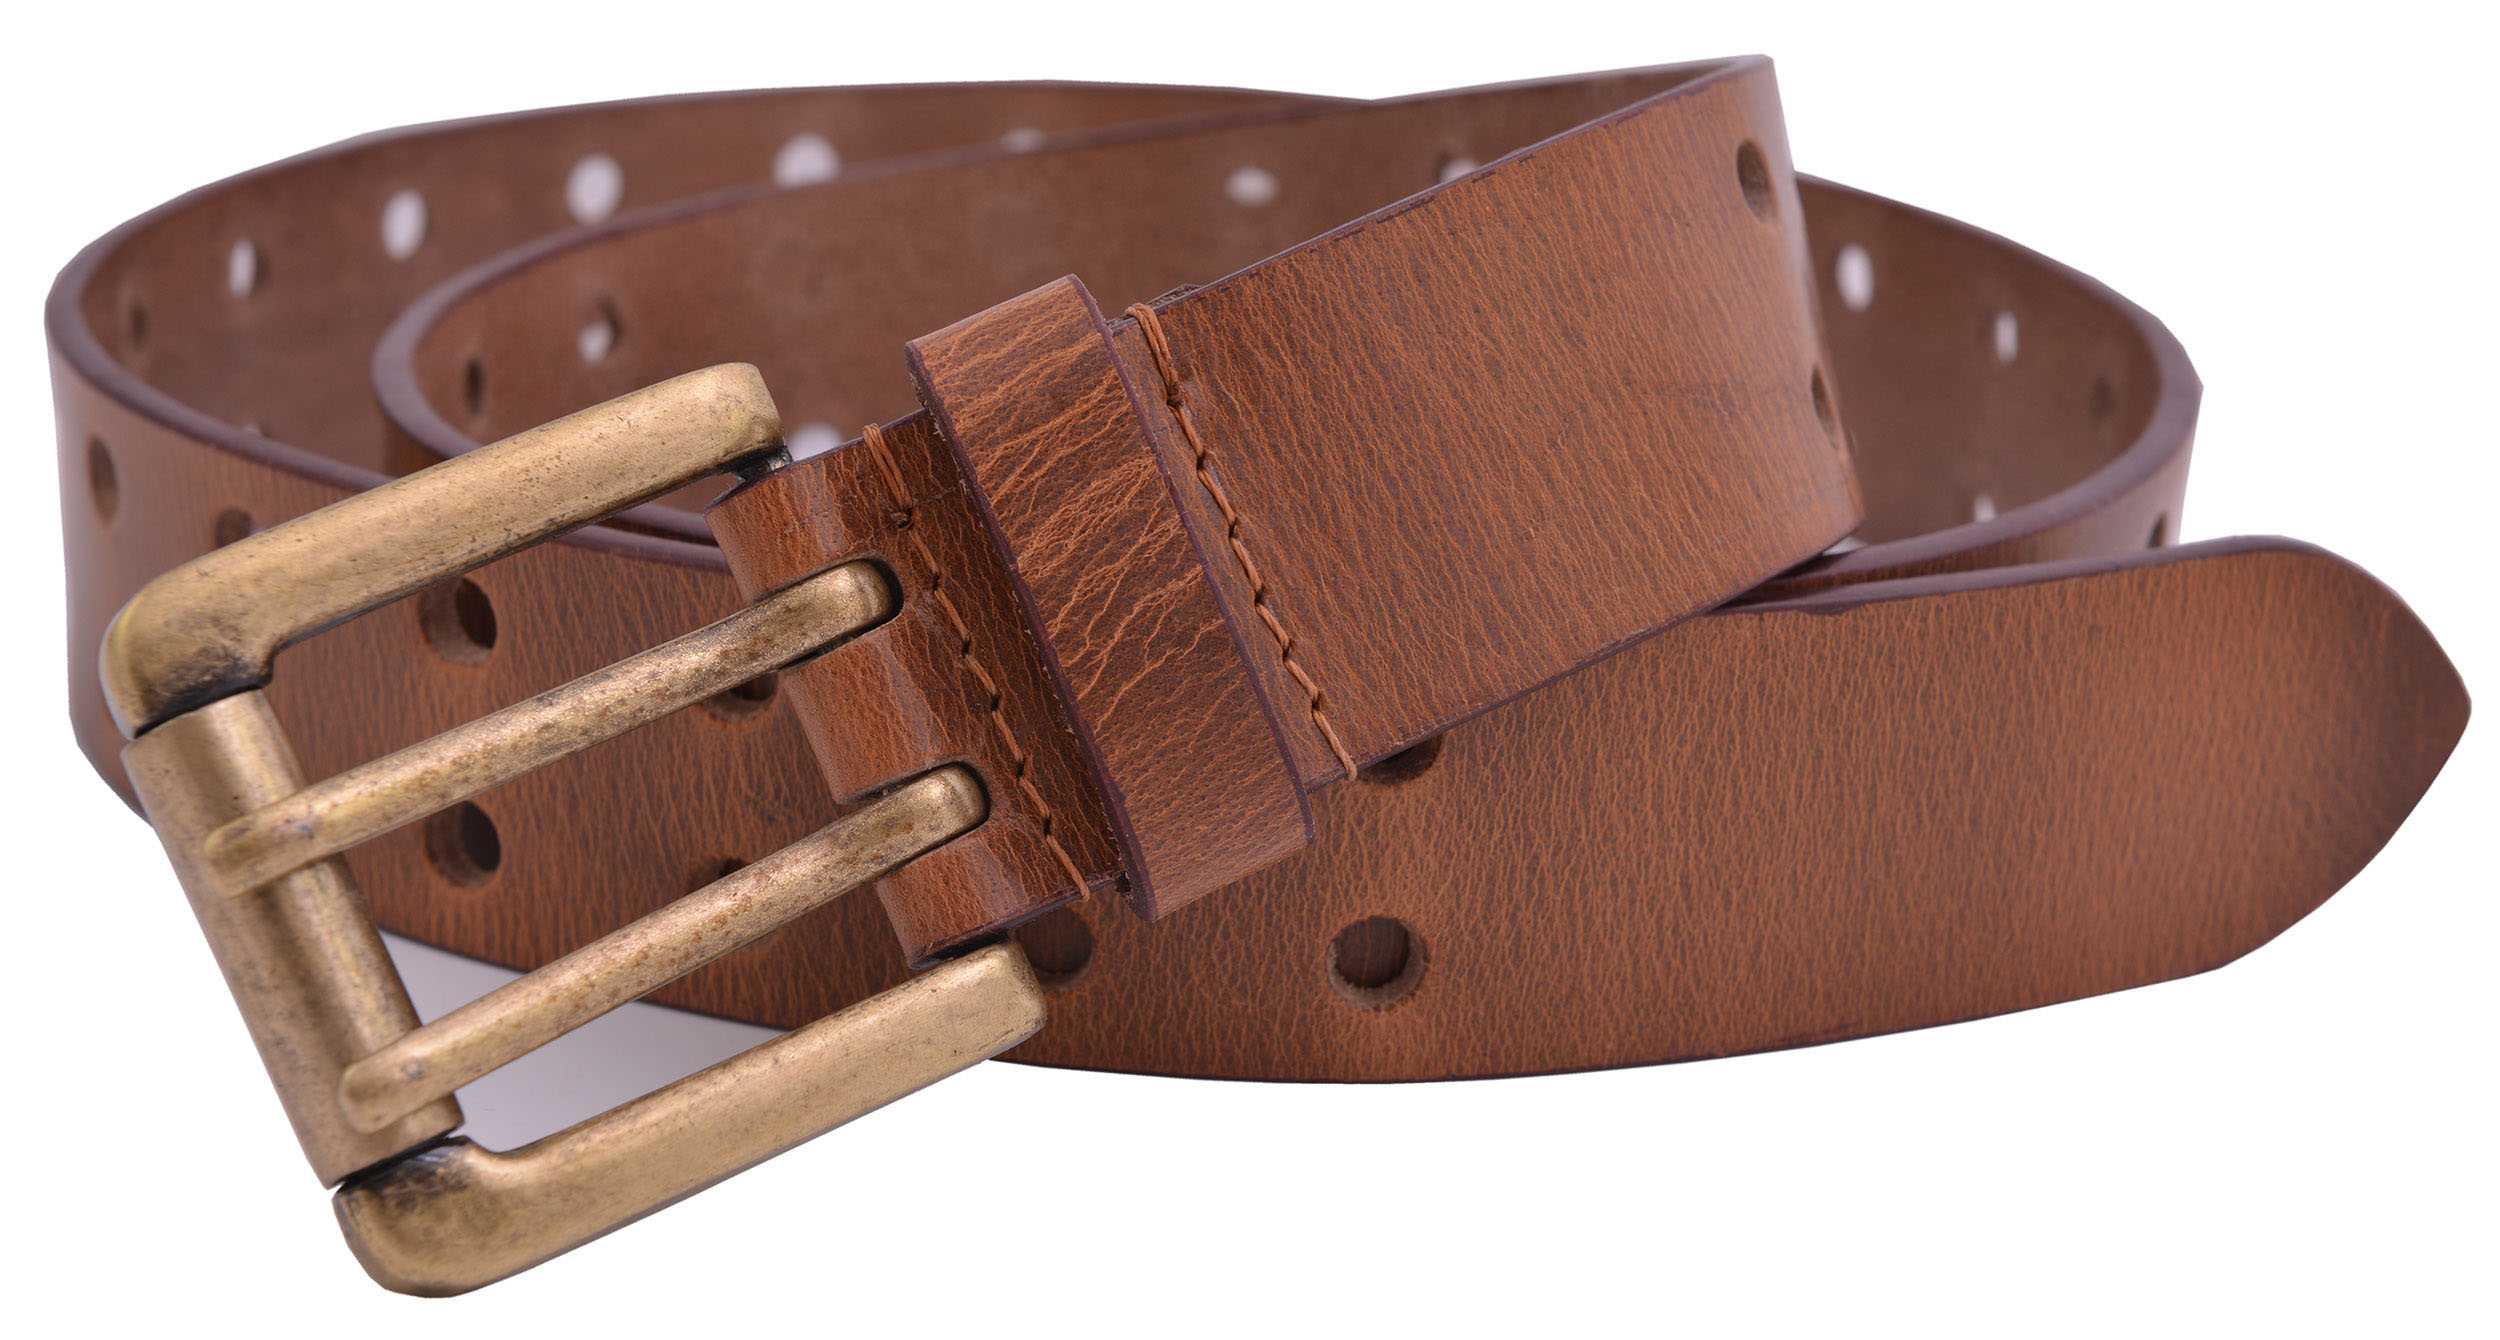 TheBeltShoppe.com Tan Full Grain SOLID Buffalo Leather 2-Hole Jeans Belt